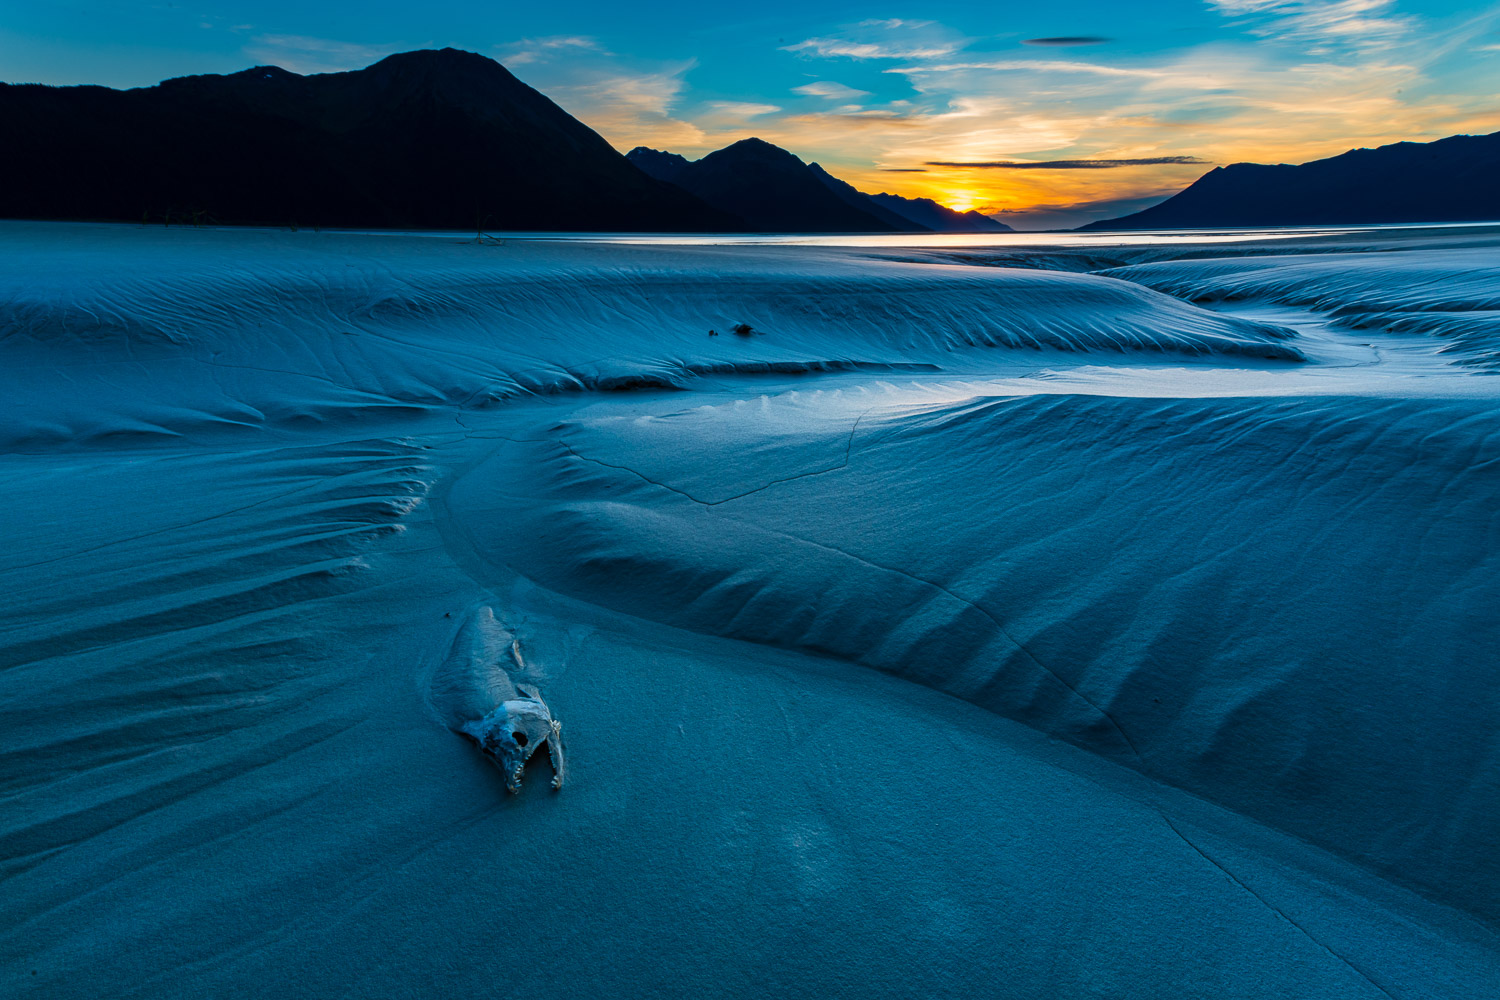 I was out photographing at a favorite location along the Turnagain Arm. As the sun was setting, I paused and looked to my left...